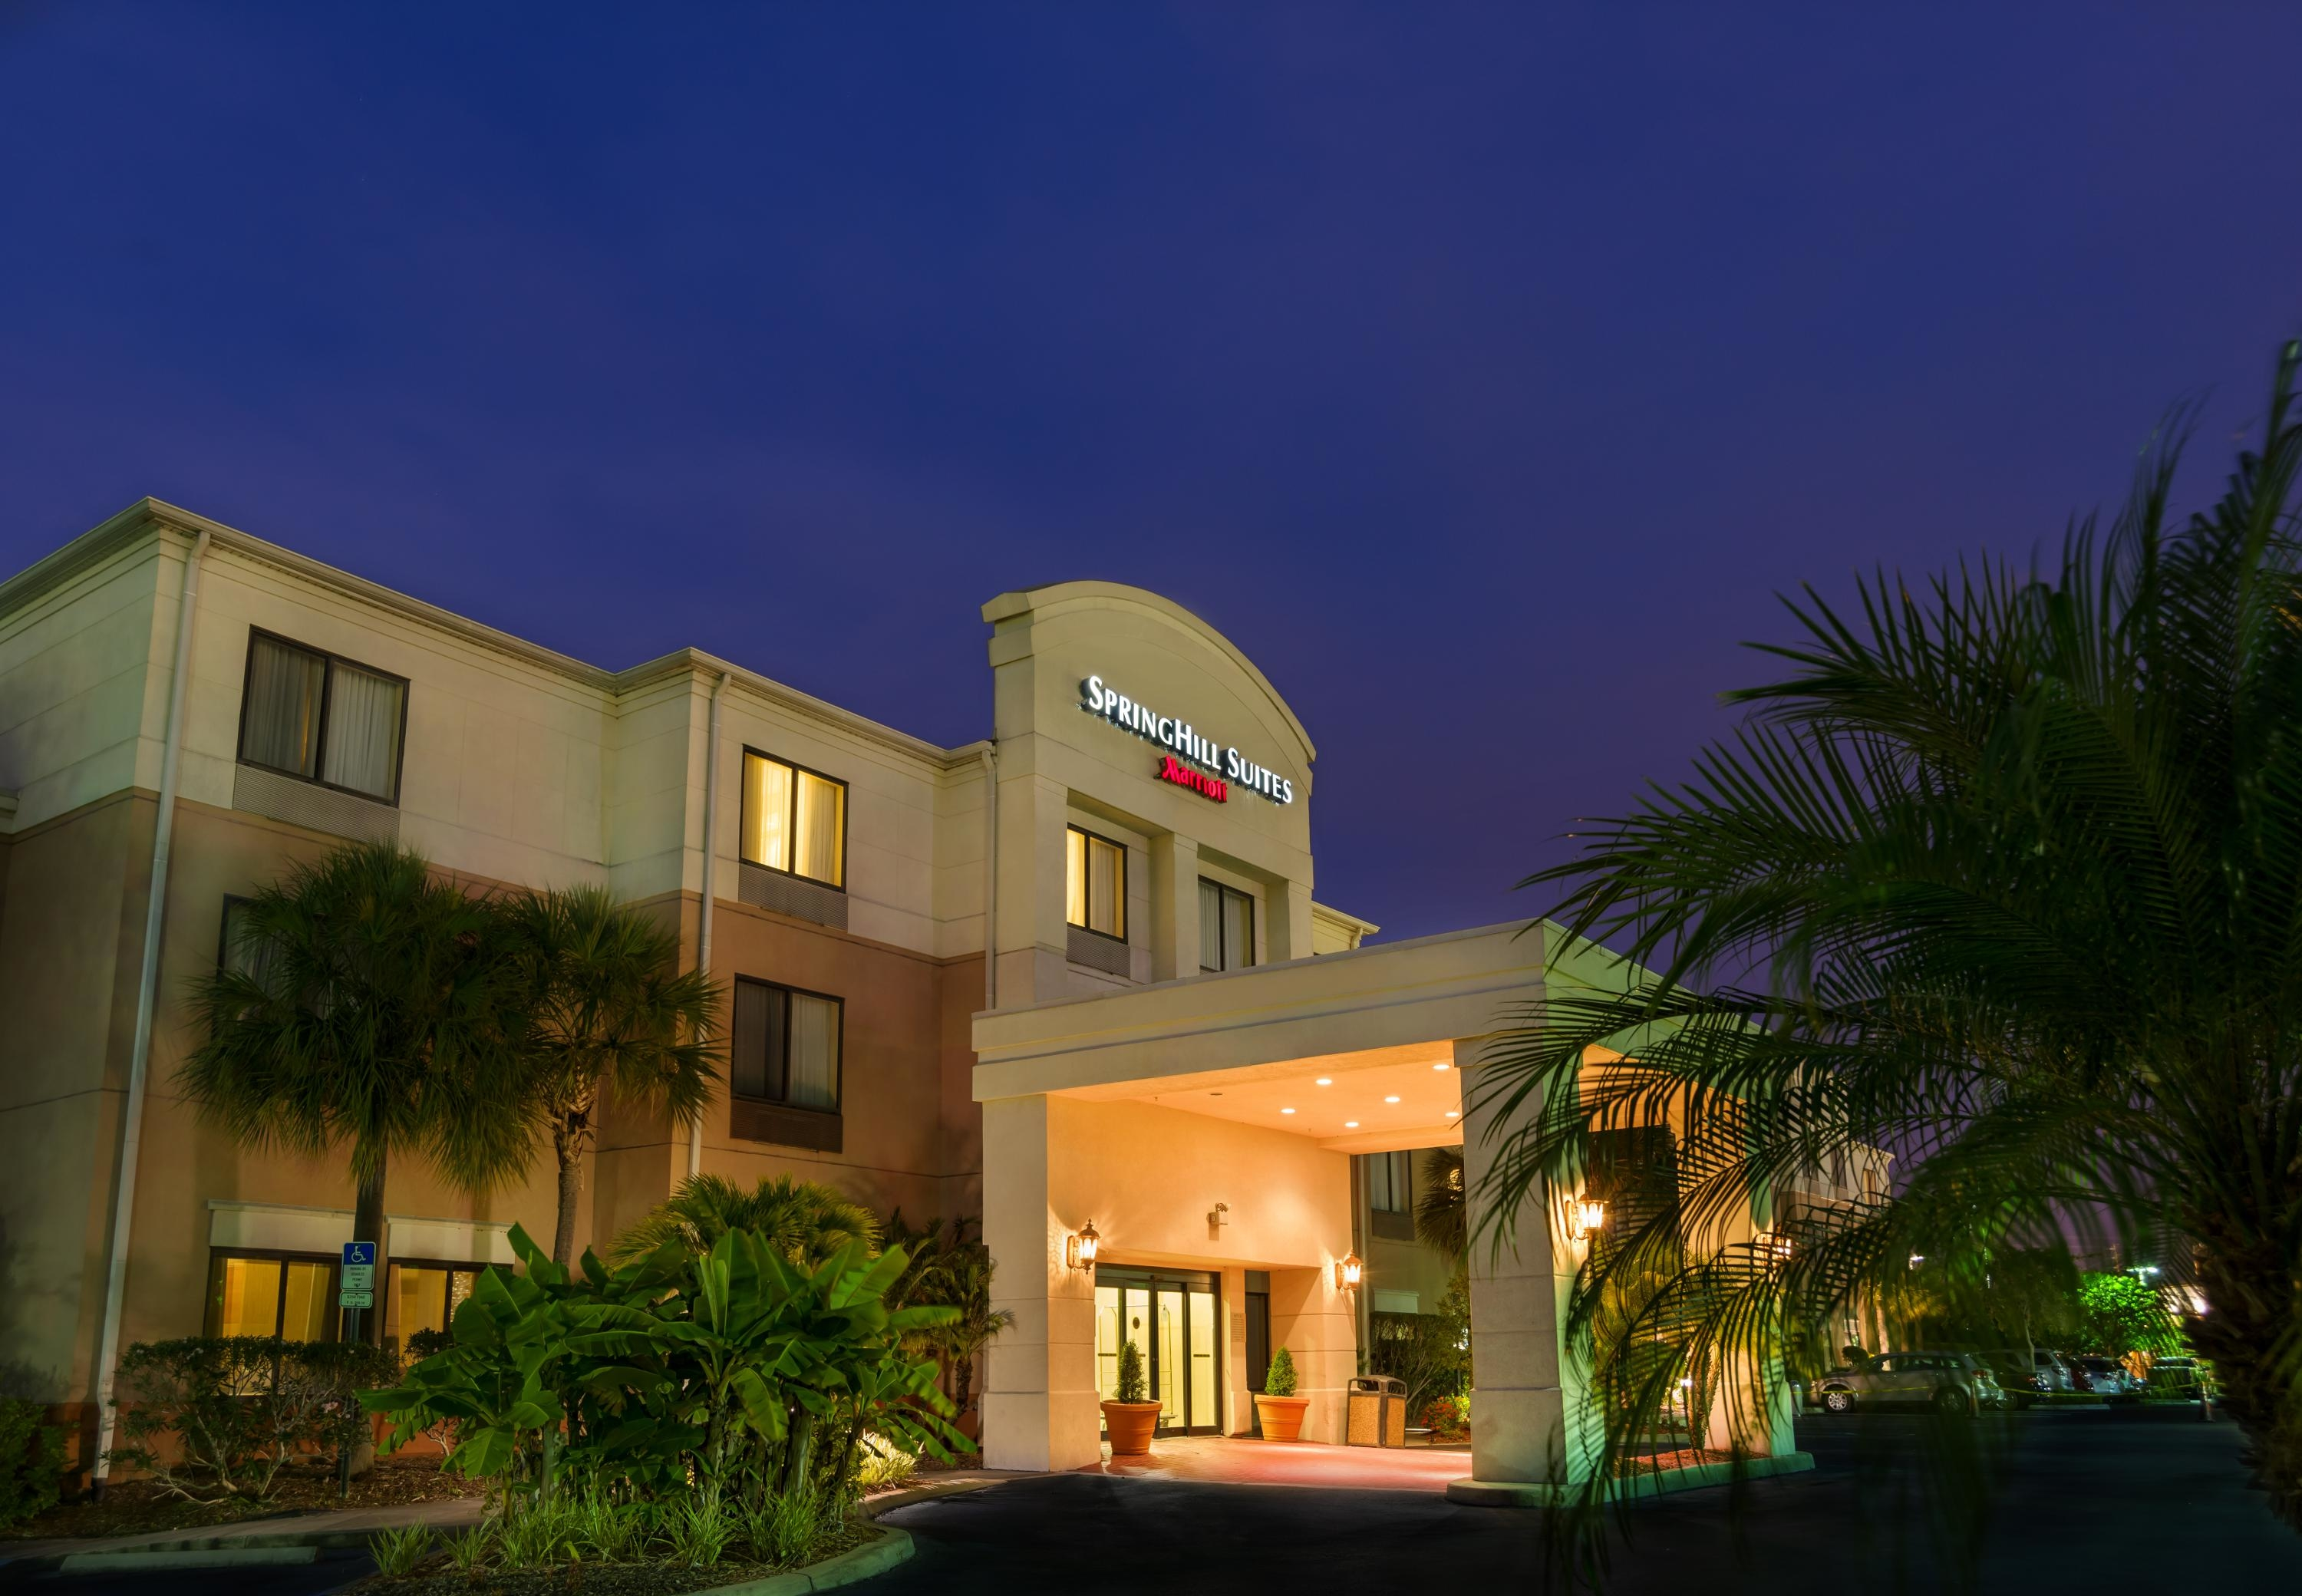 SpringHill Suites by Marriott St. Petersburg Clearwater image 1